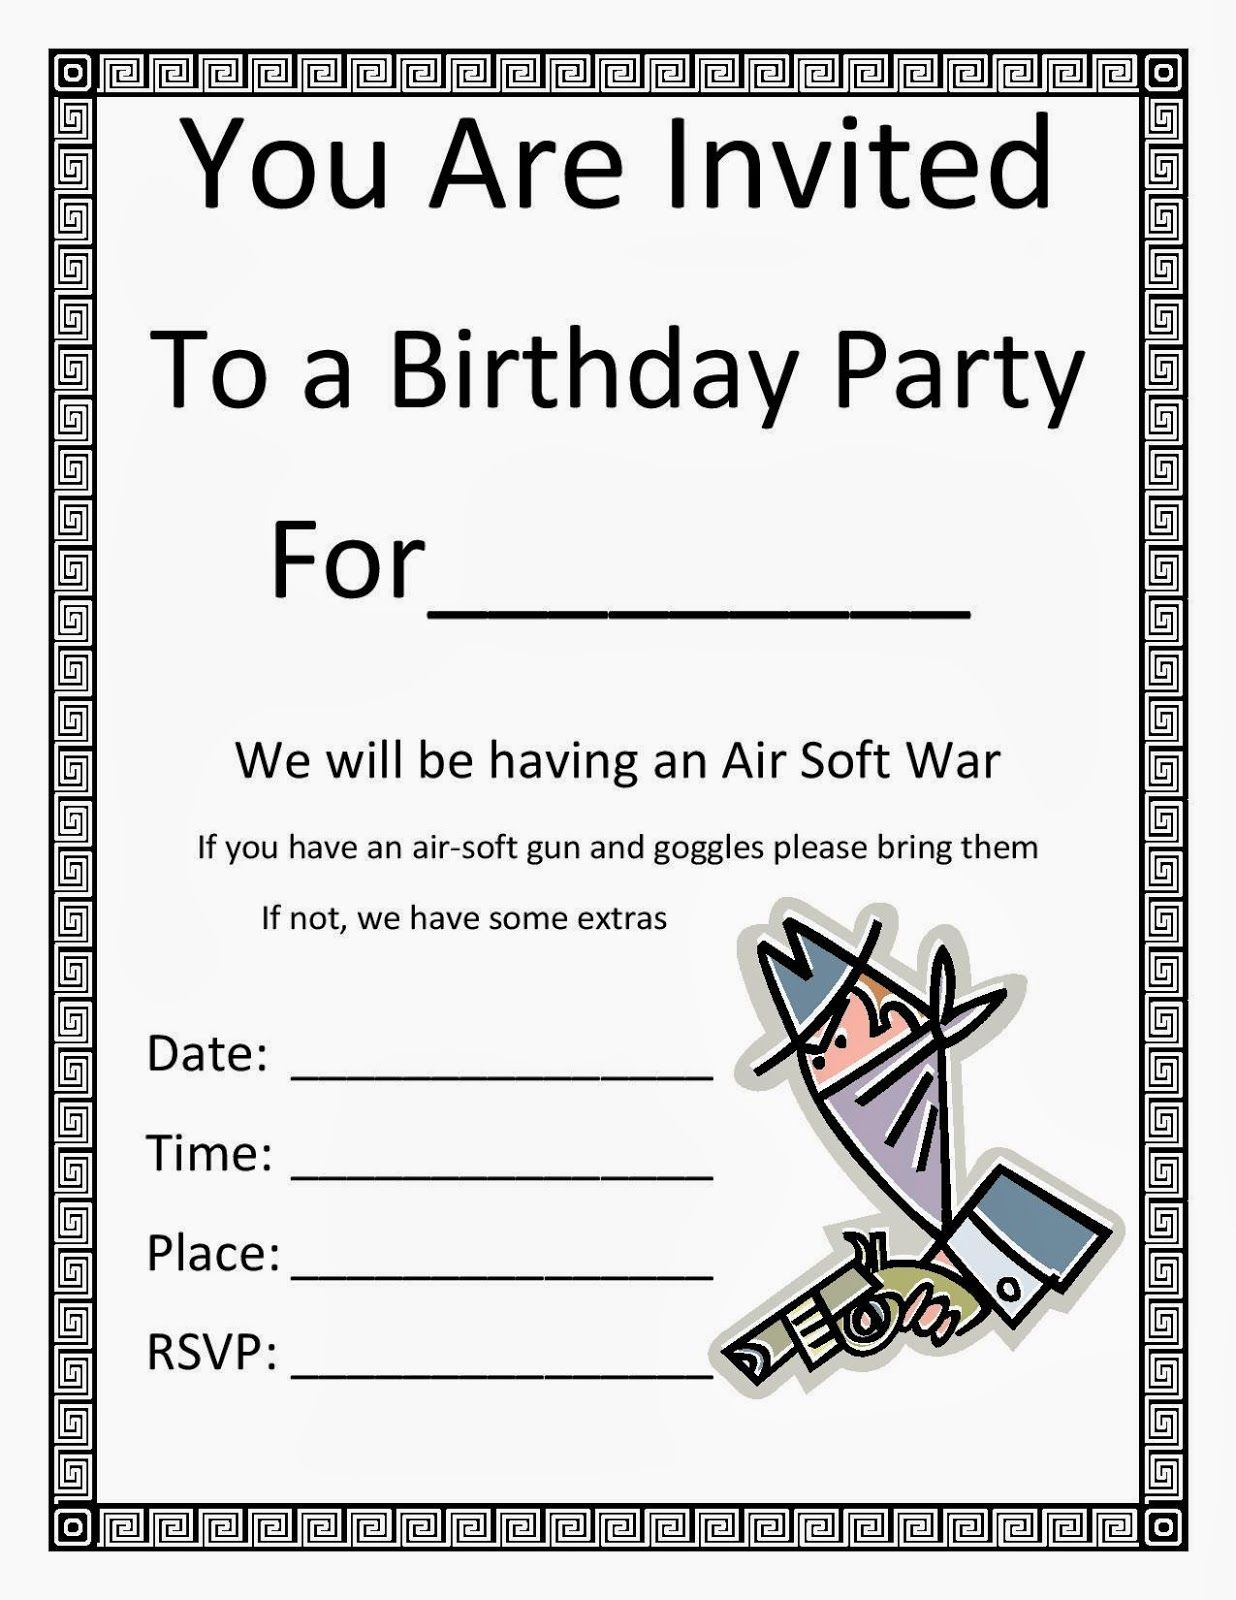 Free birthday party invitation template along with all the